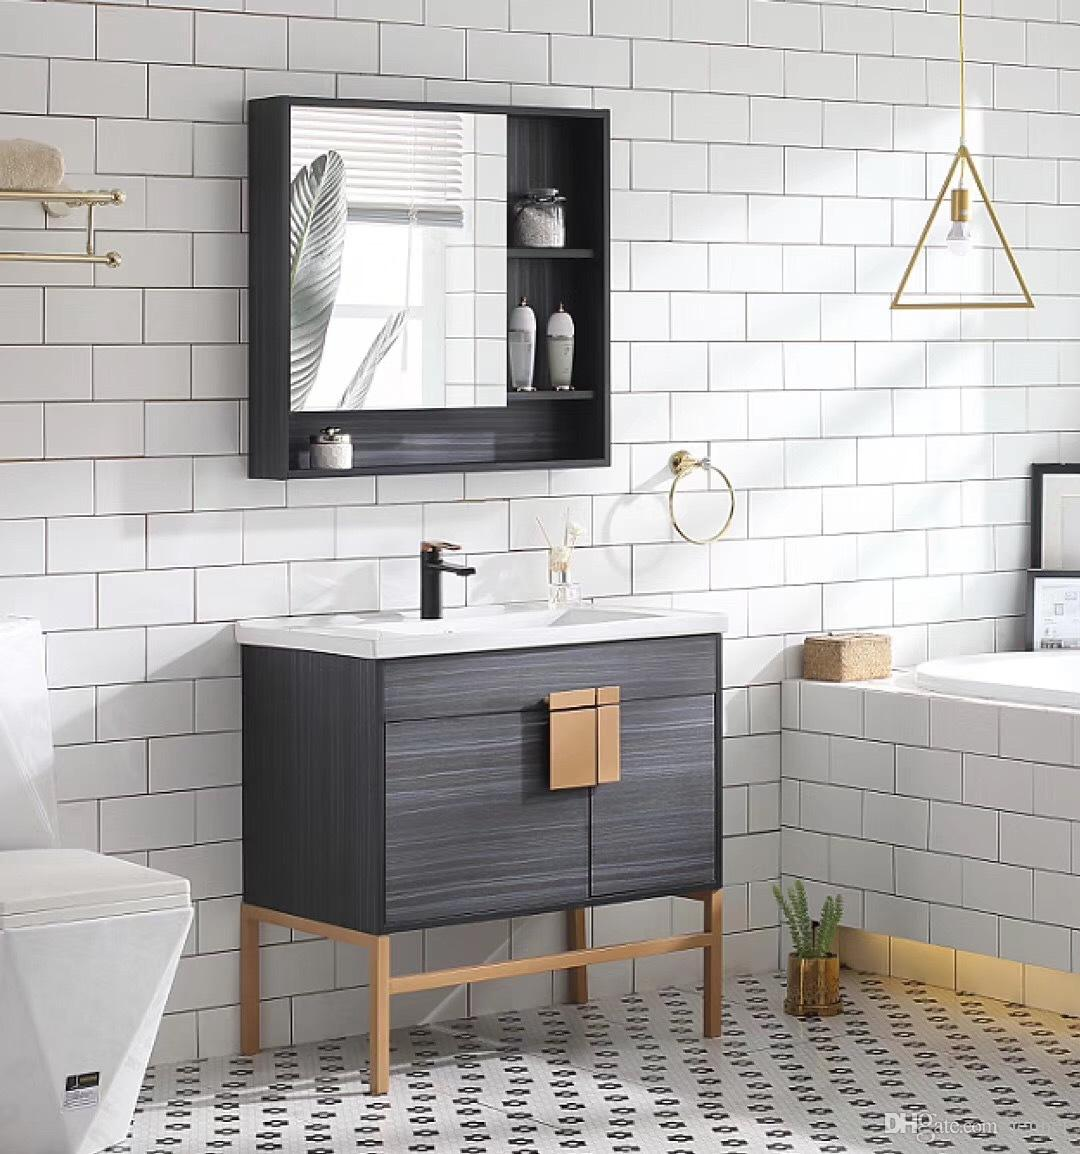 2021 Nordic Style Bathroom Cabinets Light Luxury Style Bathroom Vanity Floor Washbasin Cabinet Combination Bathroom Furniture Manufacturer From Jennet 261 31 Dhgate Com